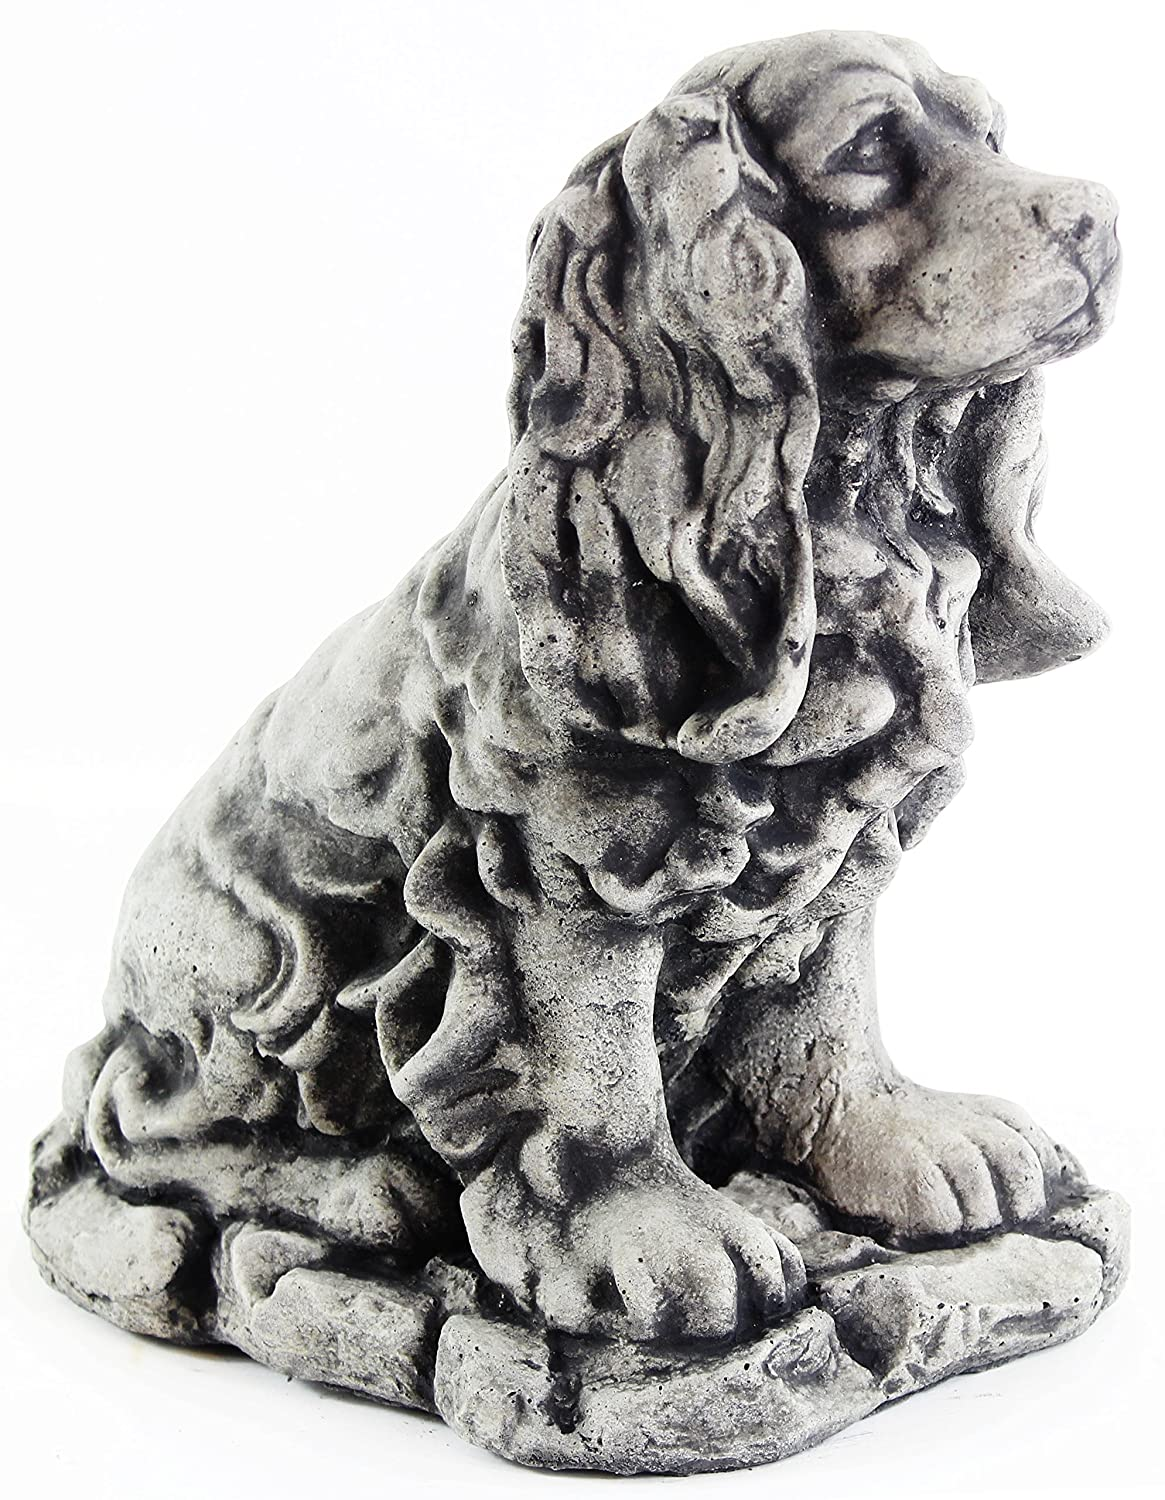 Dog Statue Cocker Spaniel Garden Statue Puppy Outdoor Cement Dog Figure Doggy Sculpture